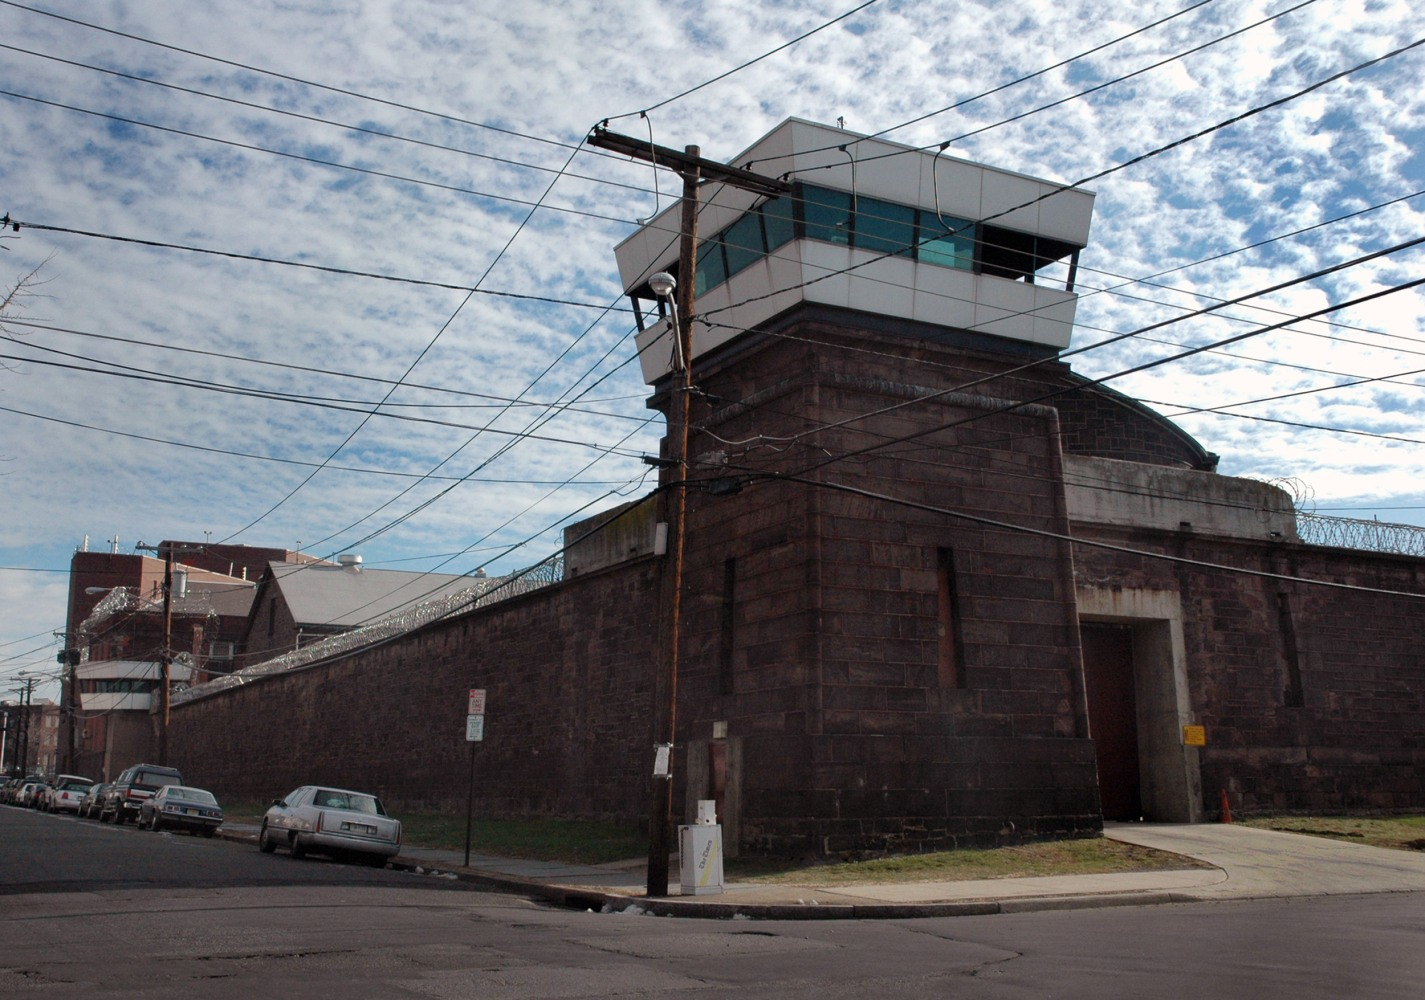 ACLU wants prisons to end ban on mass incarceration book